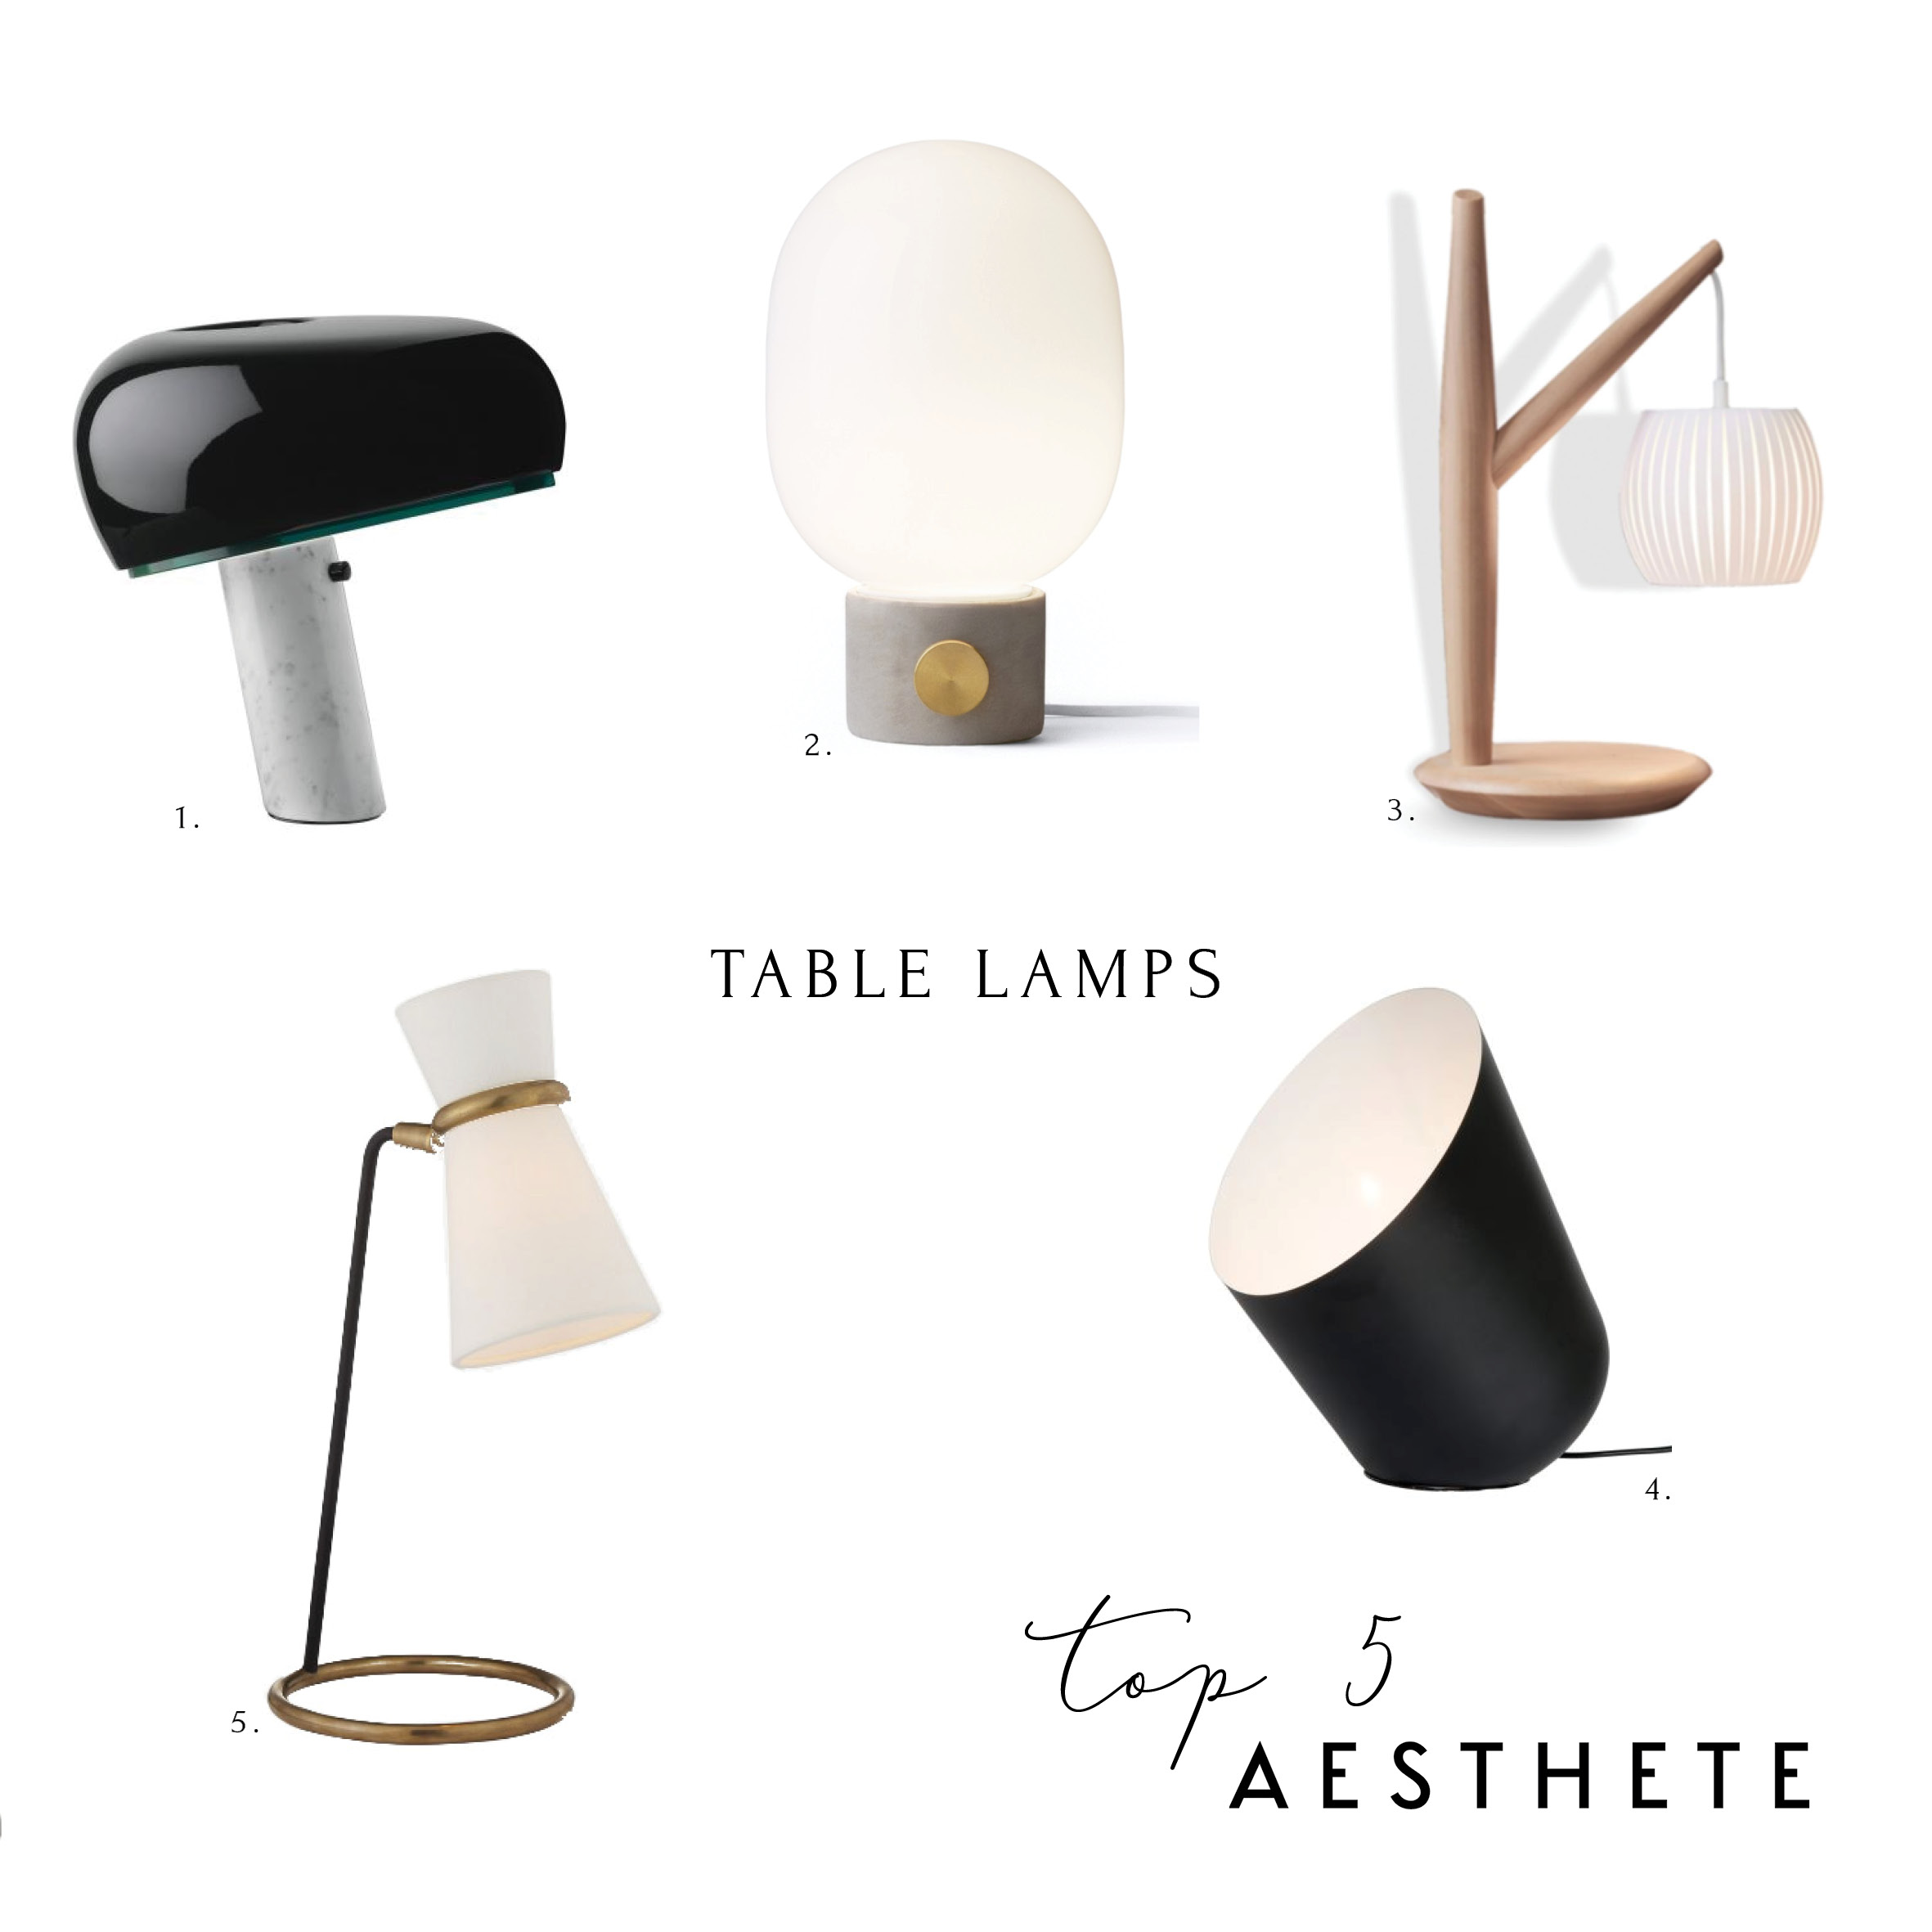 Top 5 Table Lamps.jpg